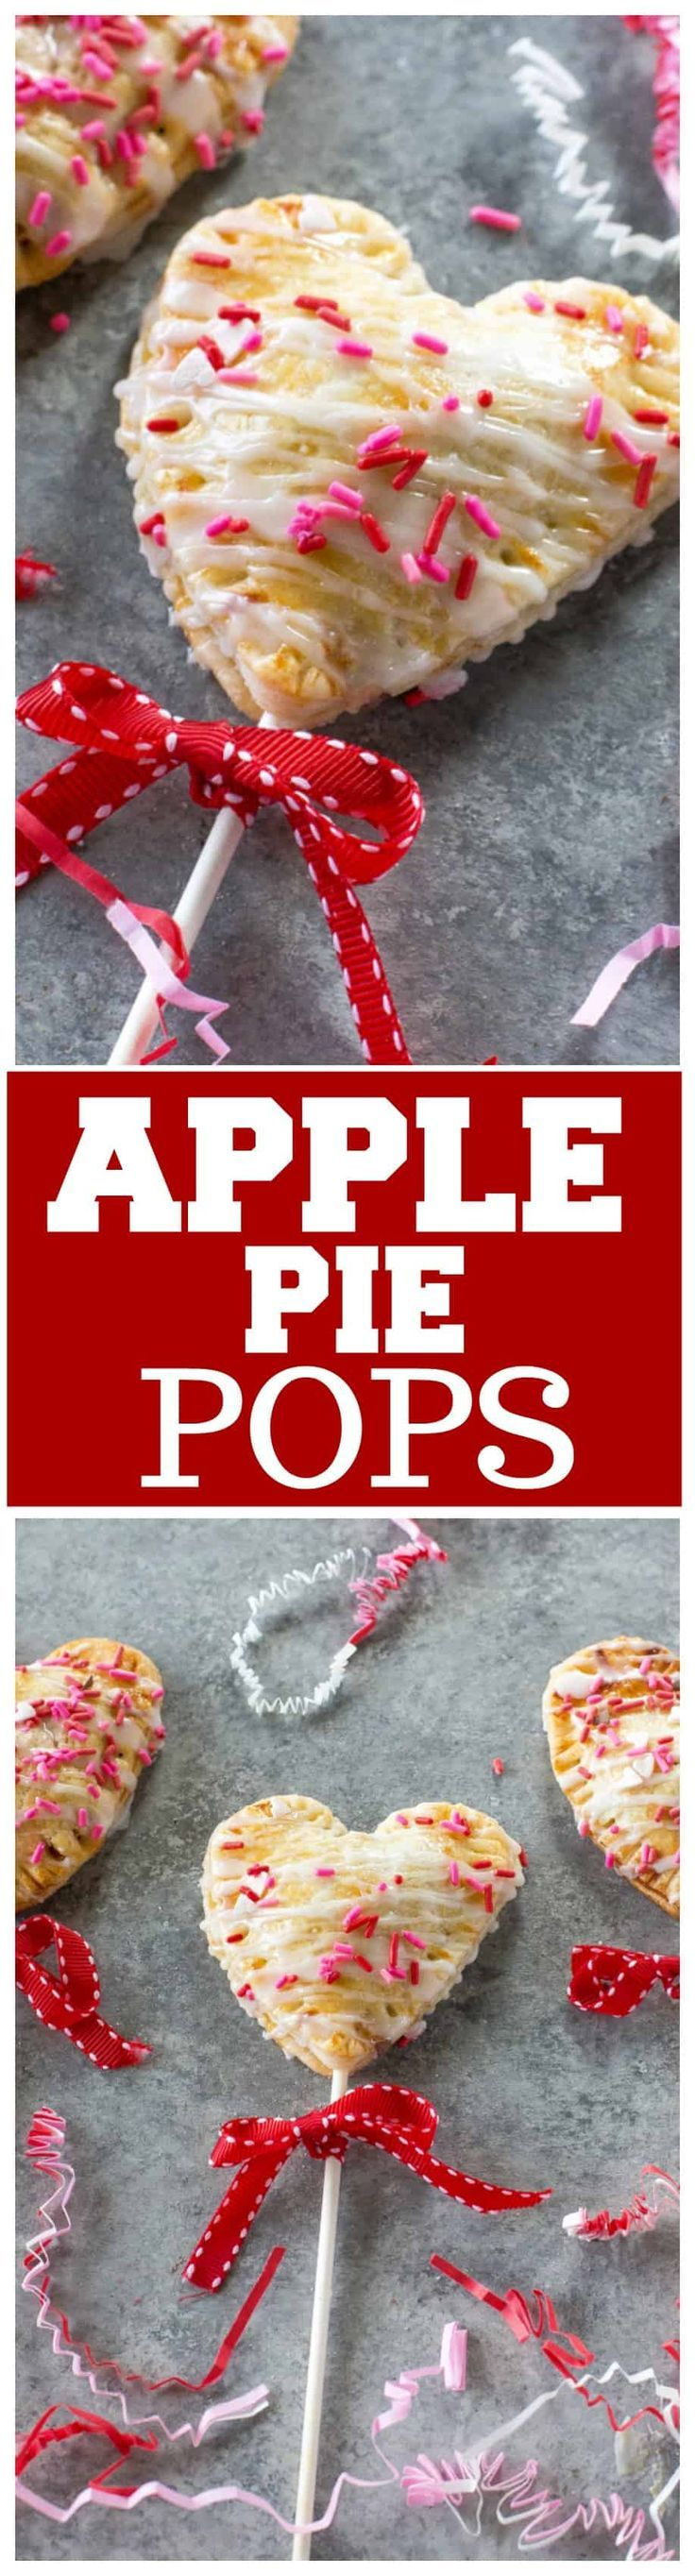 These Apple Pie Pops are heart shaped pies filled with cinnamon apples and drizzled with a powdered sugar glaze. Wrap them up with a bow for a cute Valentine's Day treat